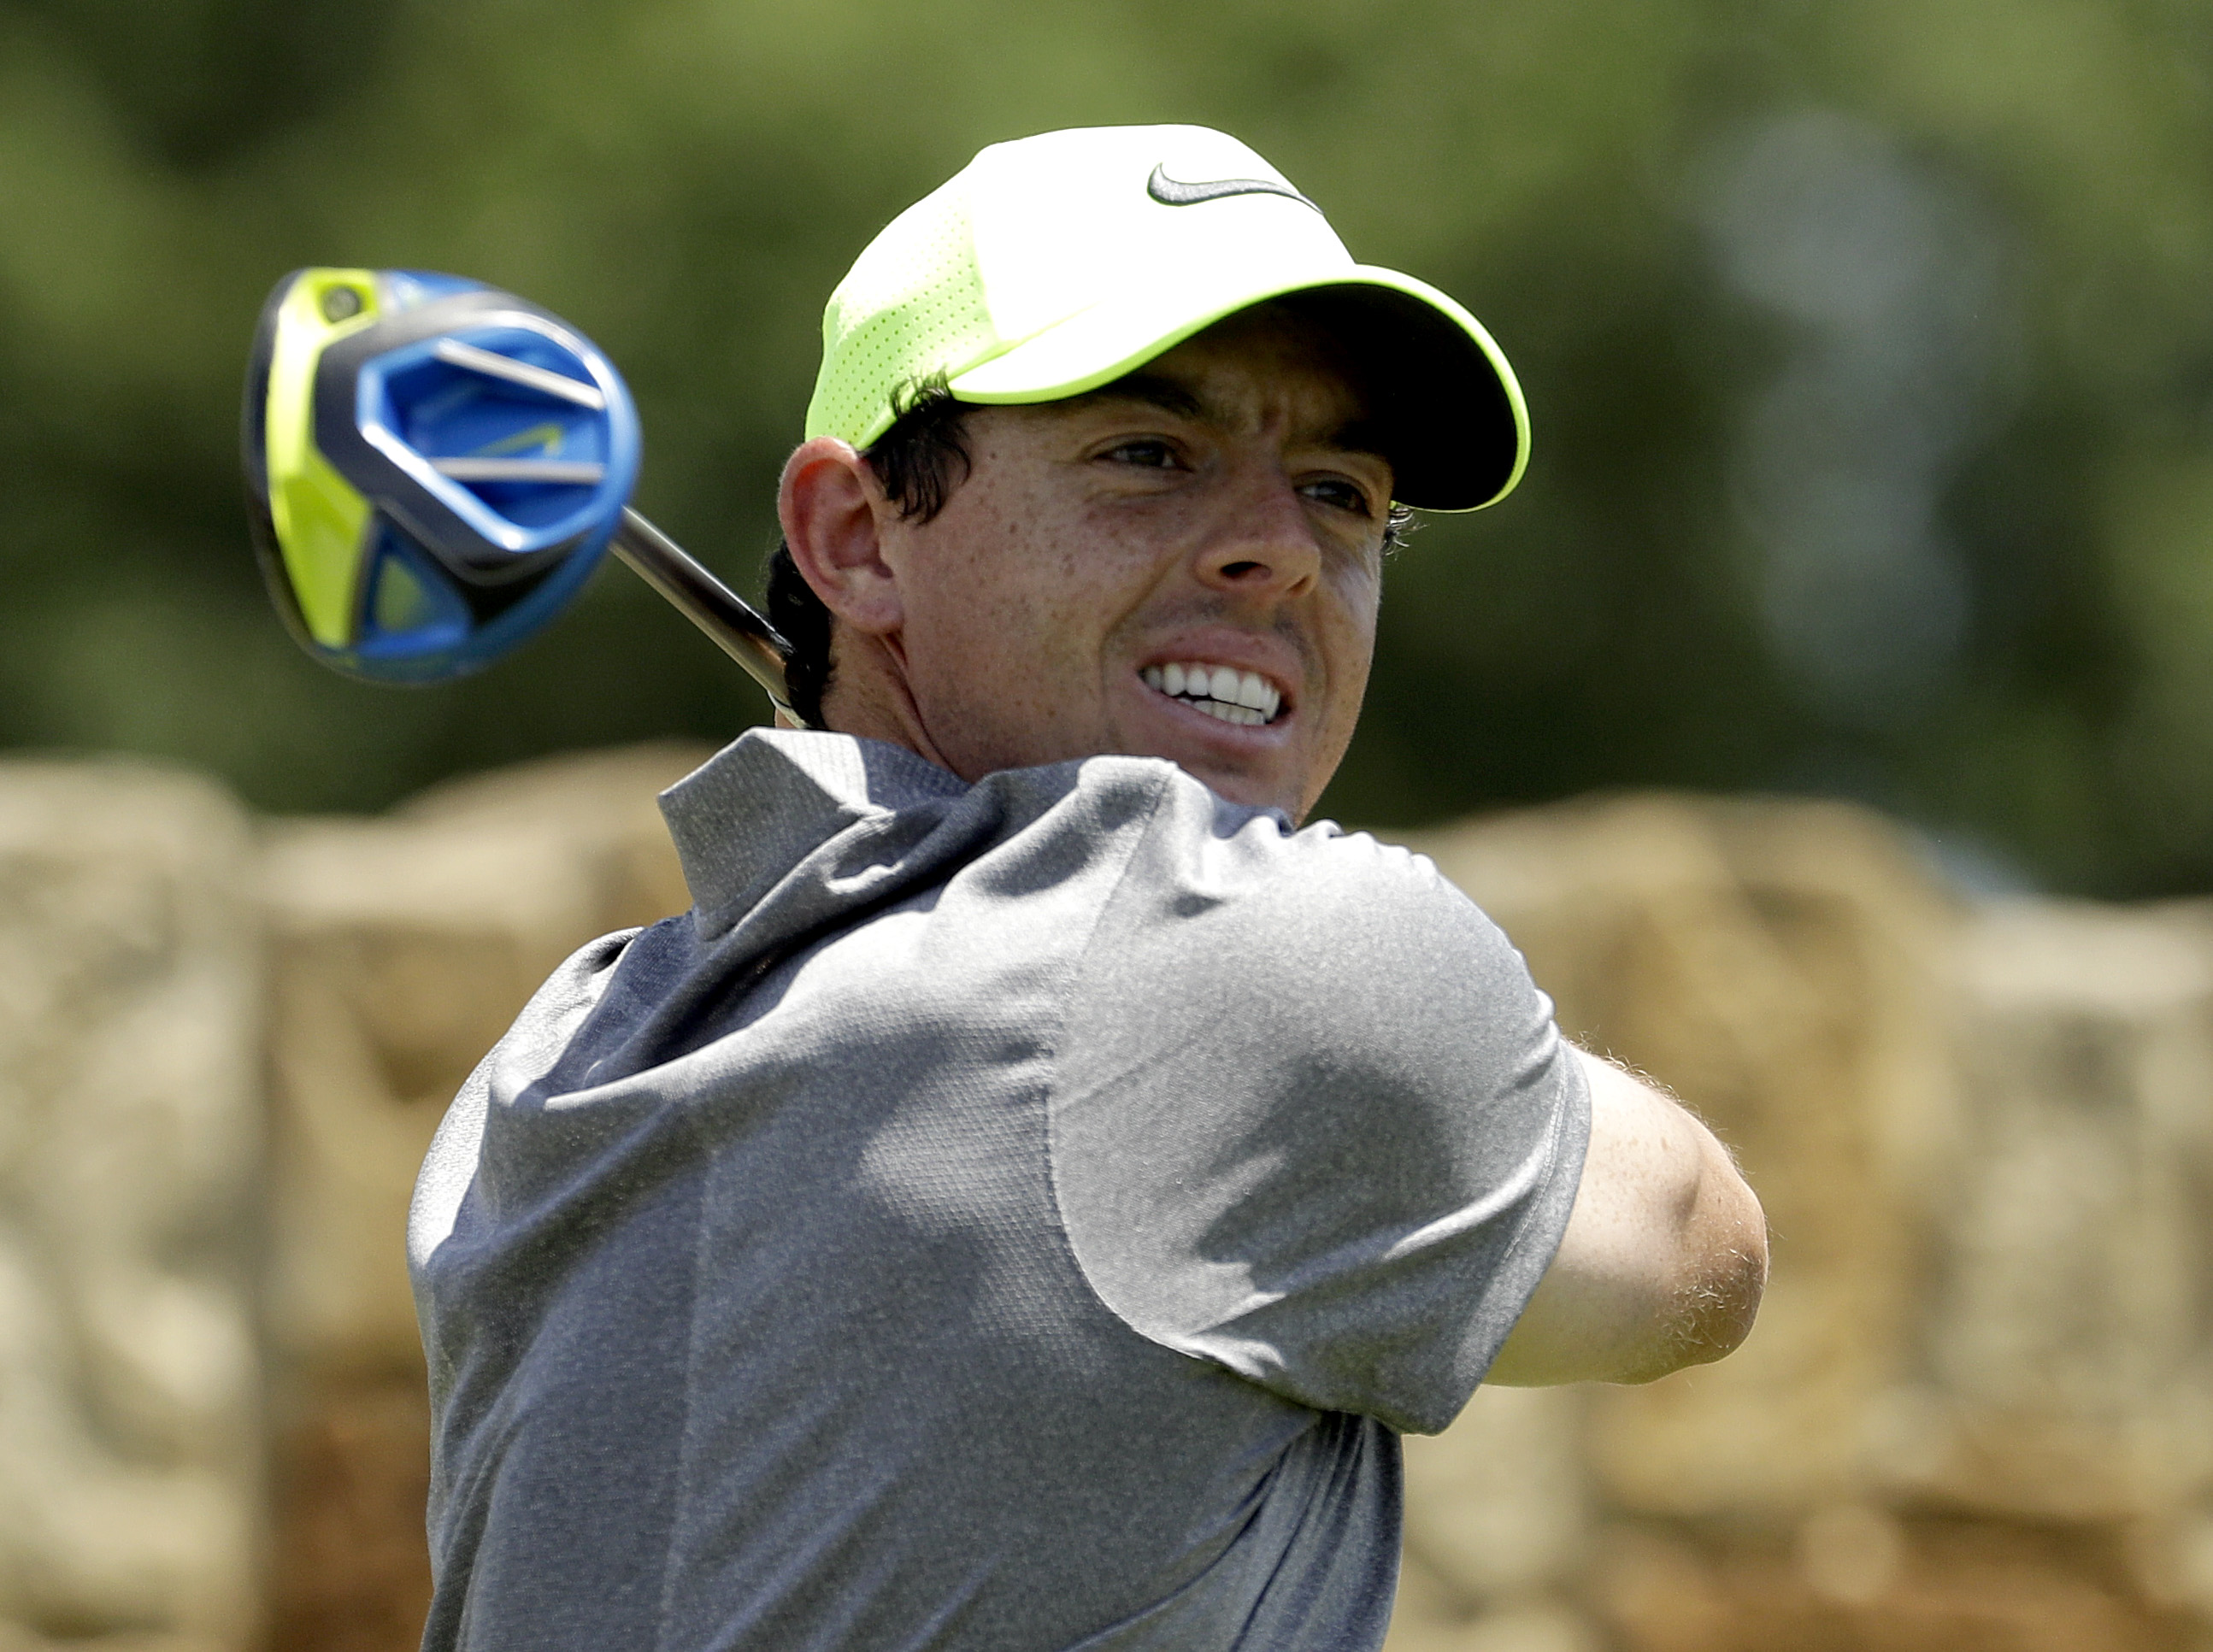 Rory McIlroy, of Northern Ireland, watches his tee shot on the ninth hole during the rain delayed second round of the U.S. Open golf championship at Oakmont Country Club on Saturday, June 18, 2016, in Oakmont, Pa. (AP Photo/Charlie Riedel)